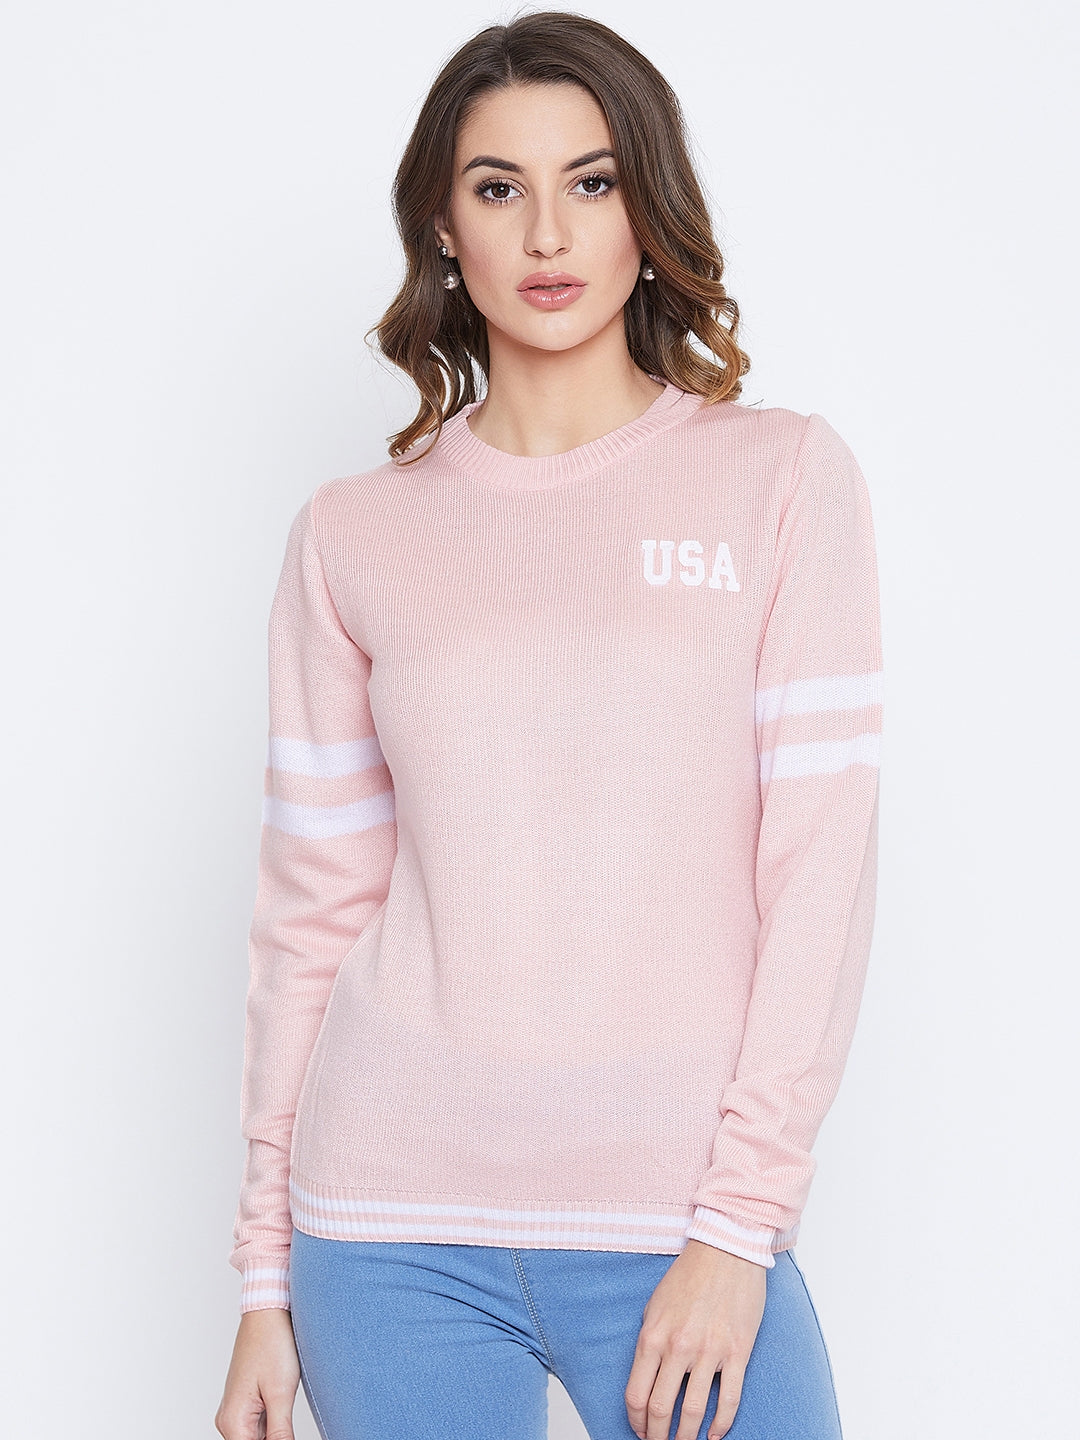 JUMP USA Women Pink Solid Sweaters